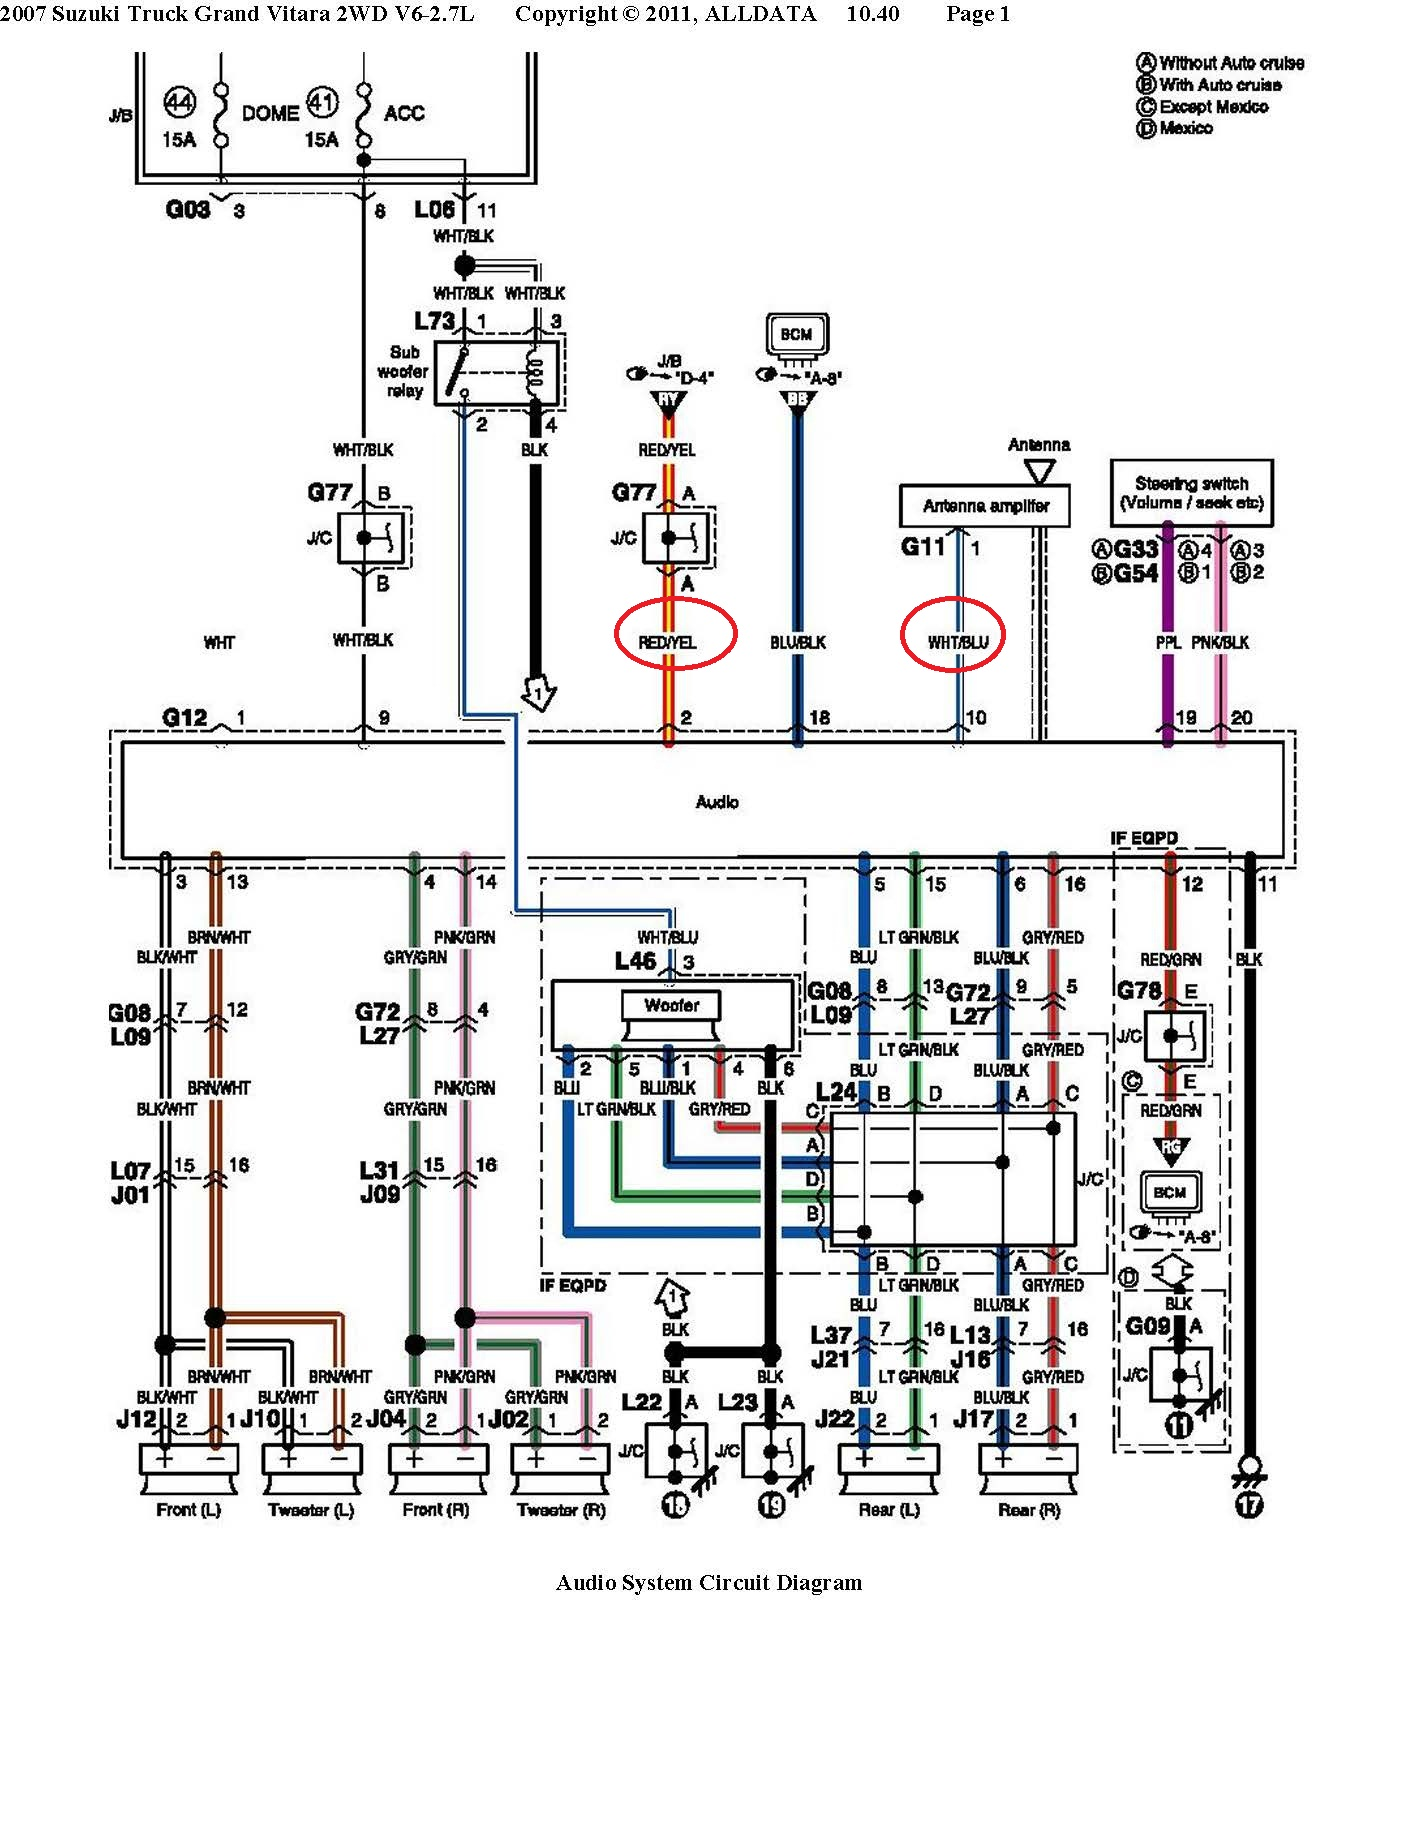 suzuki car wiring diagram - wiring diagrams all fat-soul-a -  fat-soul-a.babelweb.it  babelweb.it